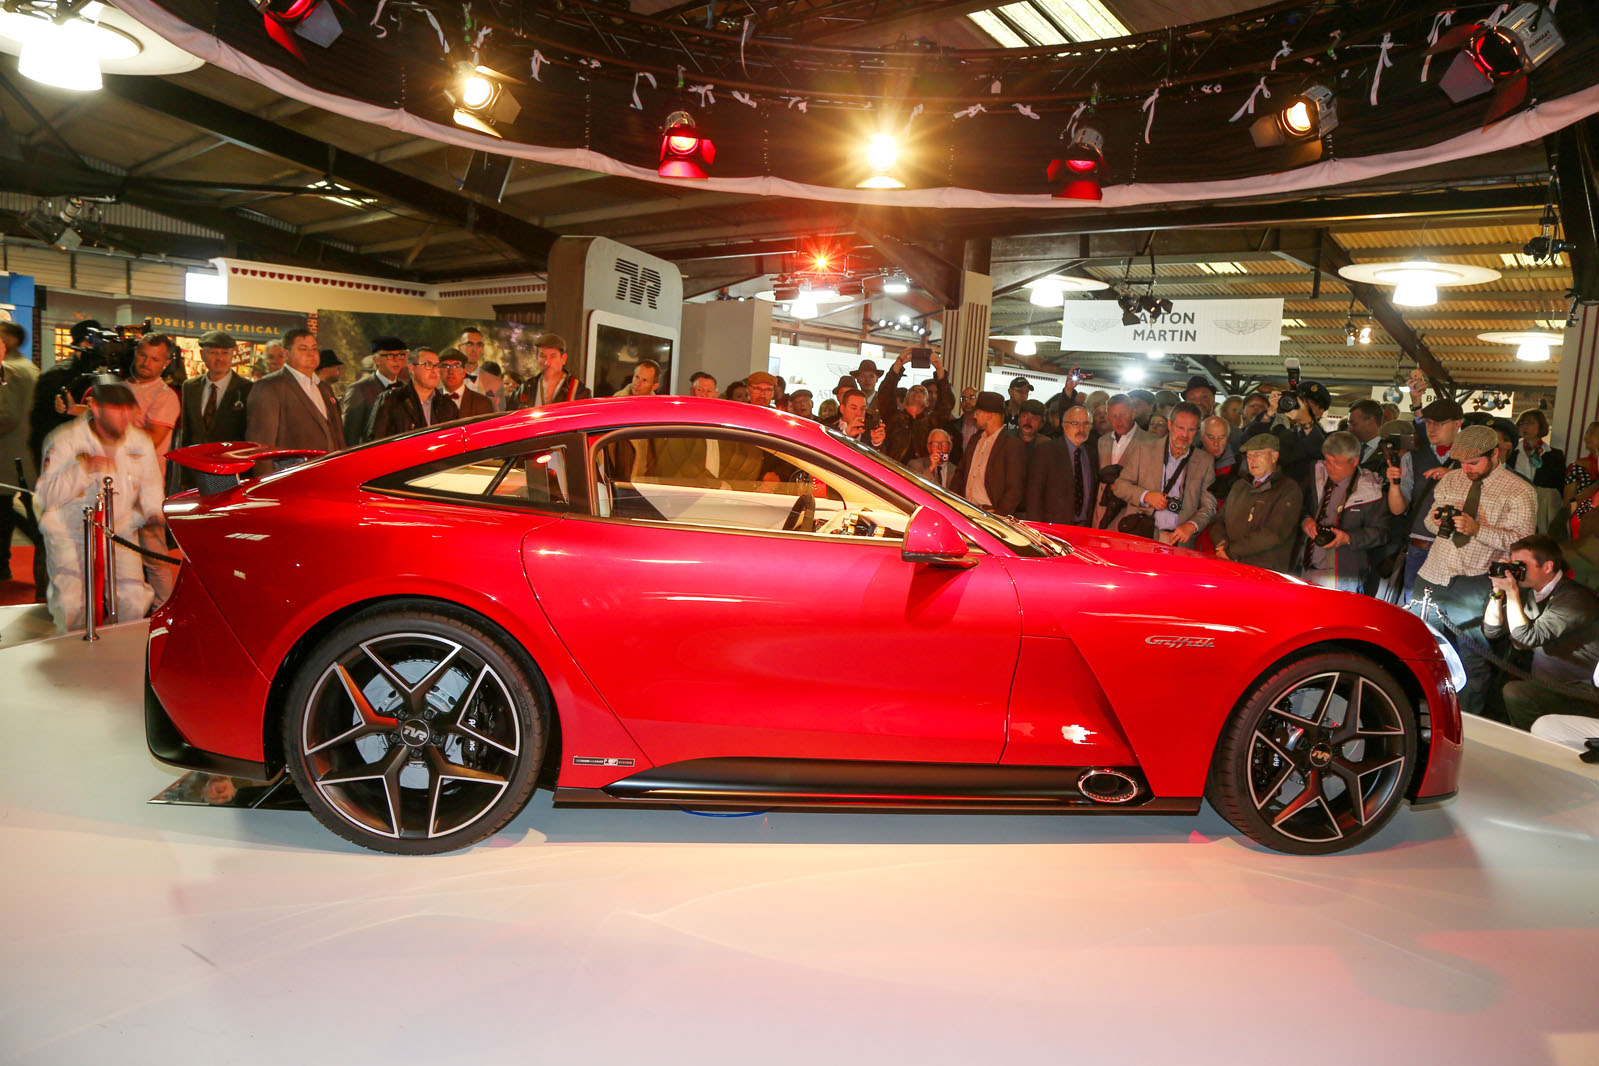 500bhp Tvr Griffith To Be Displayed At London Motor Show Autocar Remote Starter Its Striking Design Takes Inspiration From The Original And Tuscan But Adopts More Advanced Aerodynamics Boost Performance